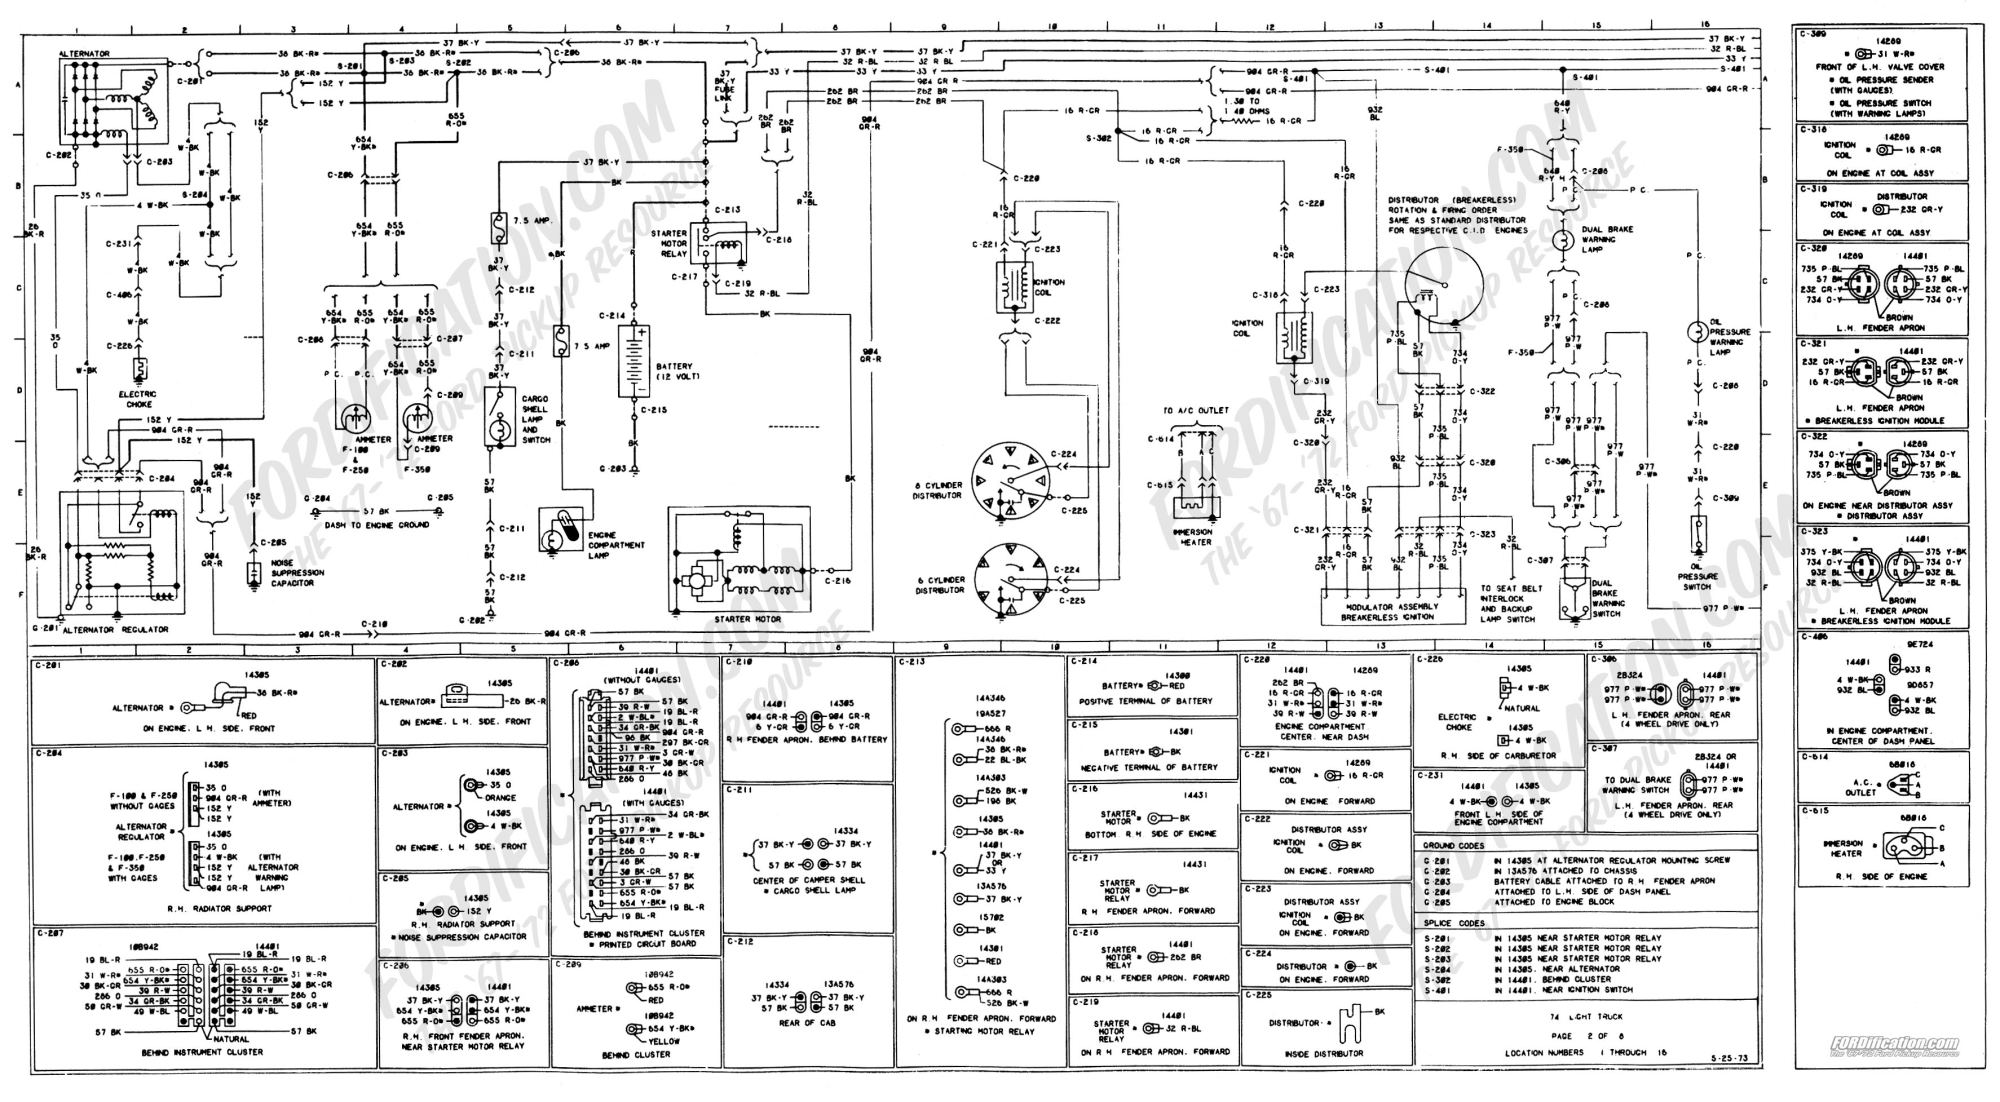 hight resolution of ford econoline wiring diagrams wiring diagram inside ford econoline stereo wiring diagram ford econoline wiring diagrams